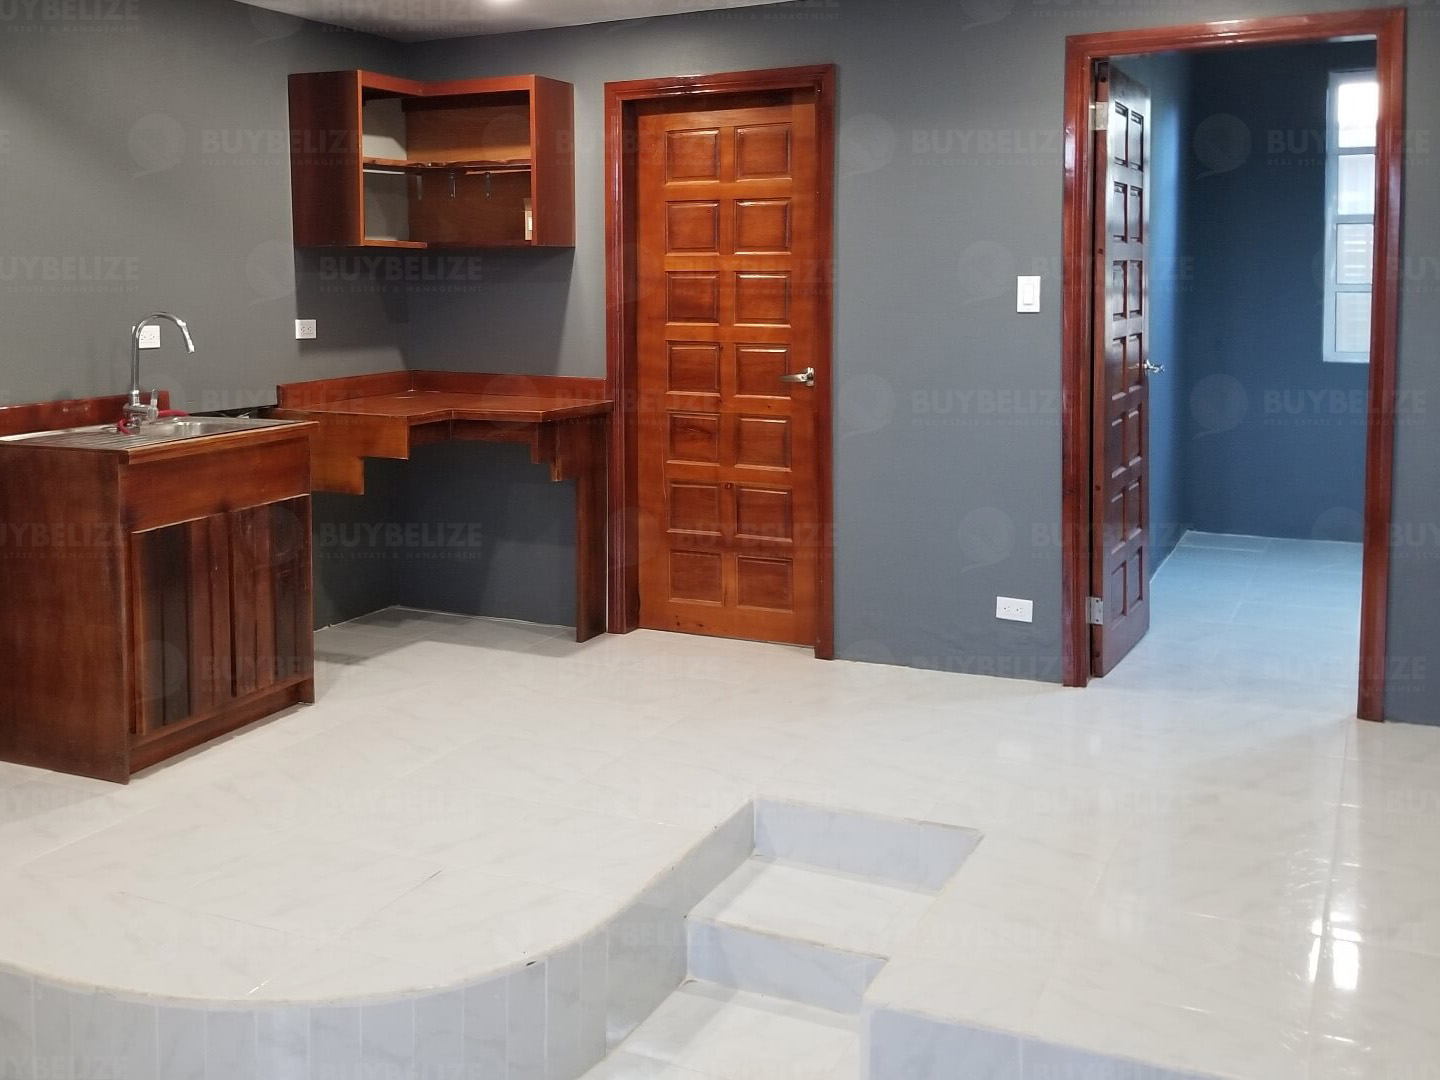 One Bedroom Apartment for Rent in Belize City